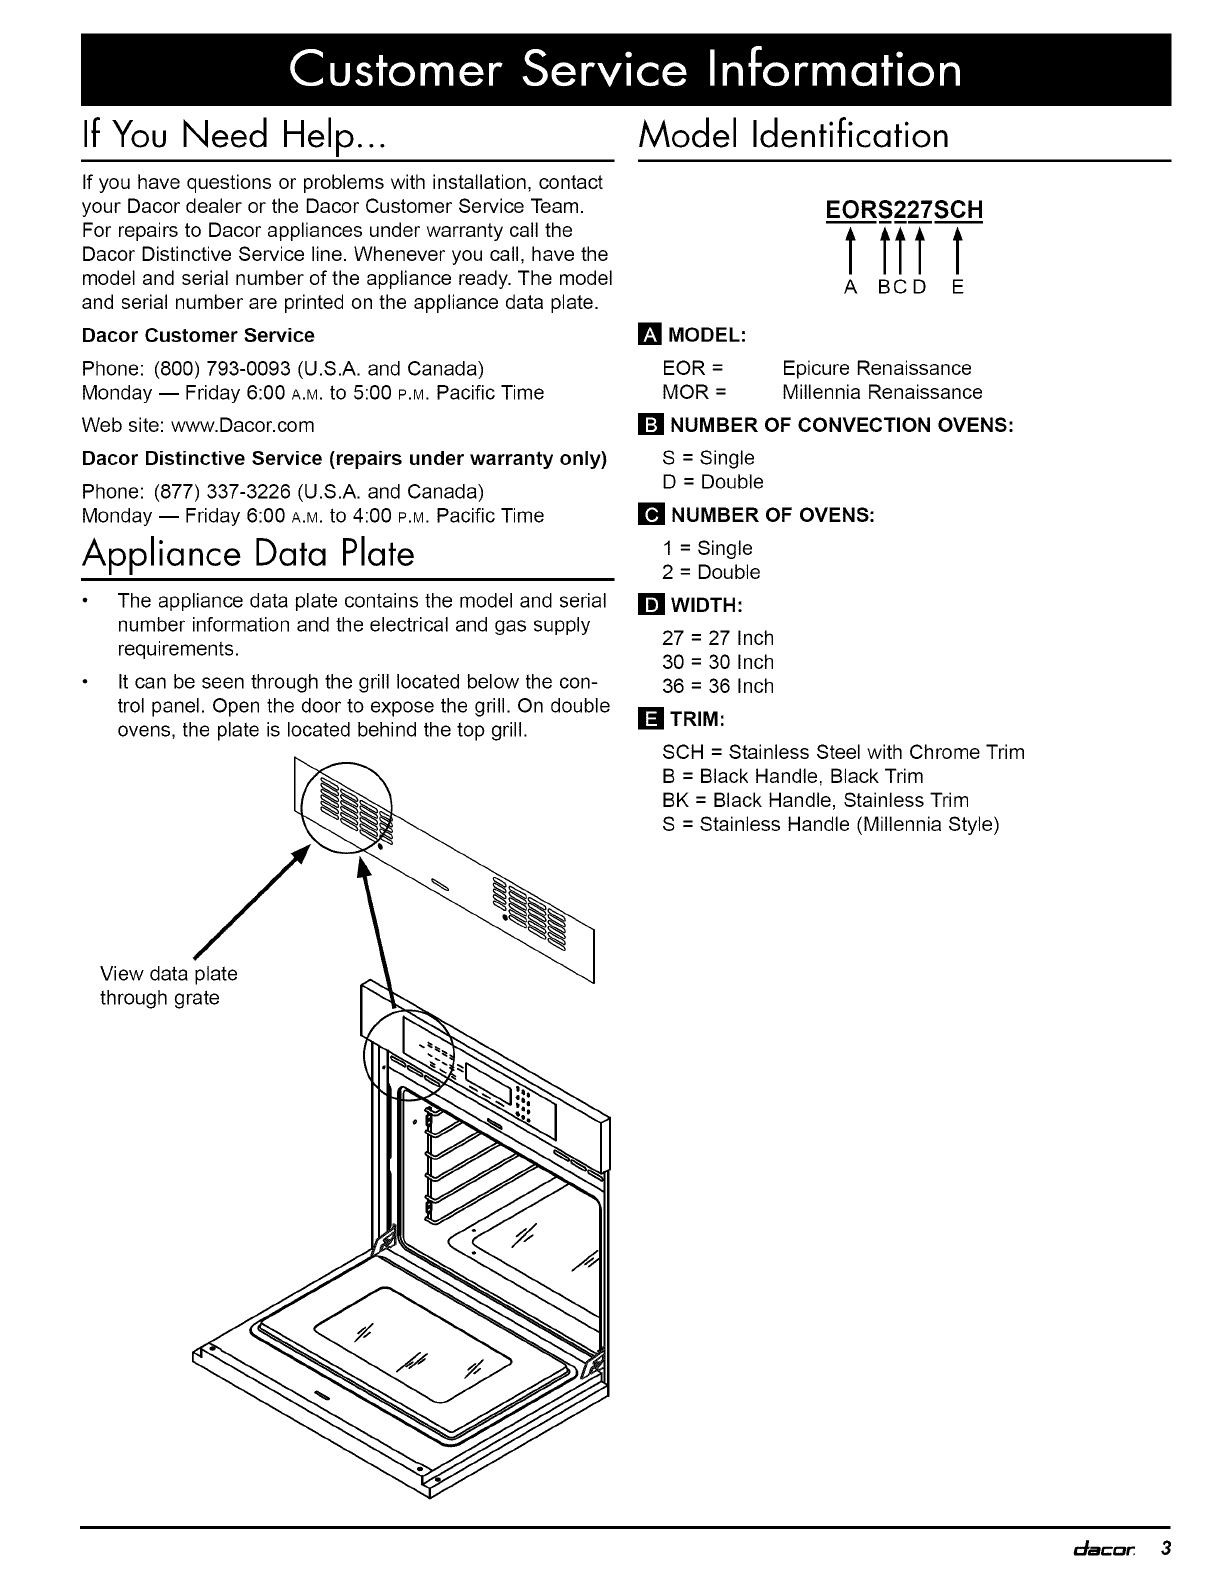 Dacor Eord230b User Manual Wall Oven Manuals And Guides 1006374l Double Wiring Diagram For If You Need Help